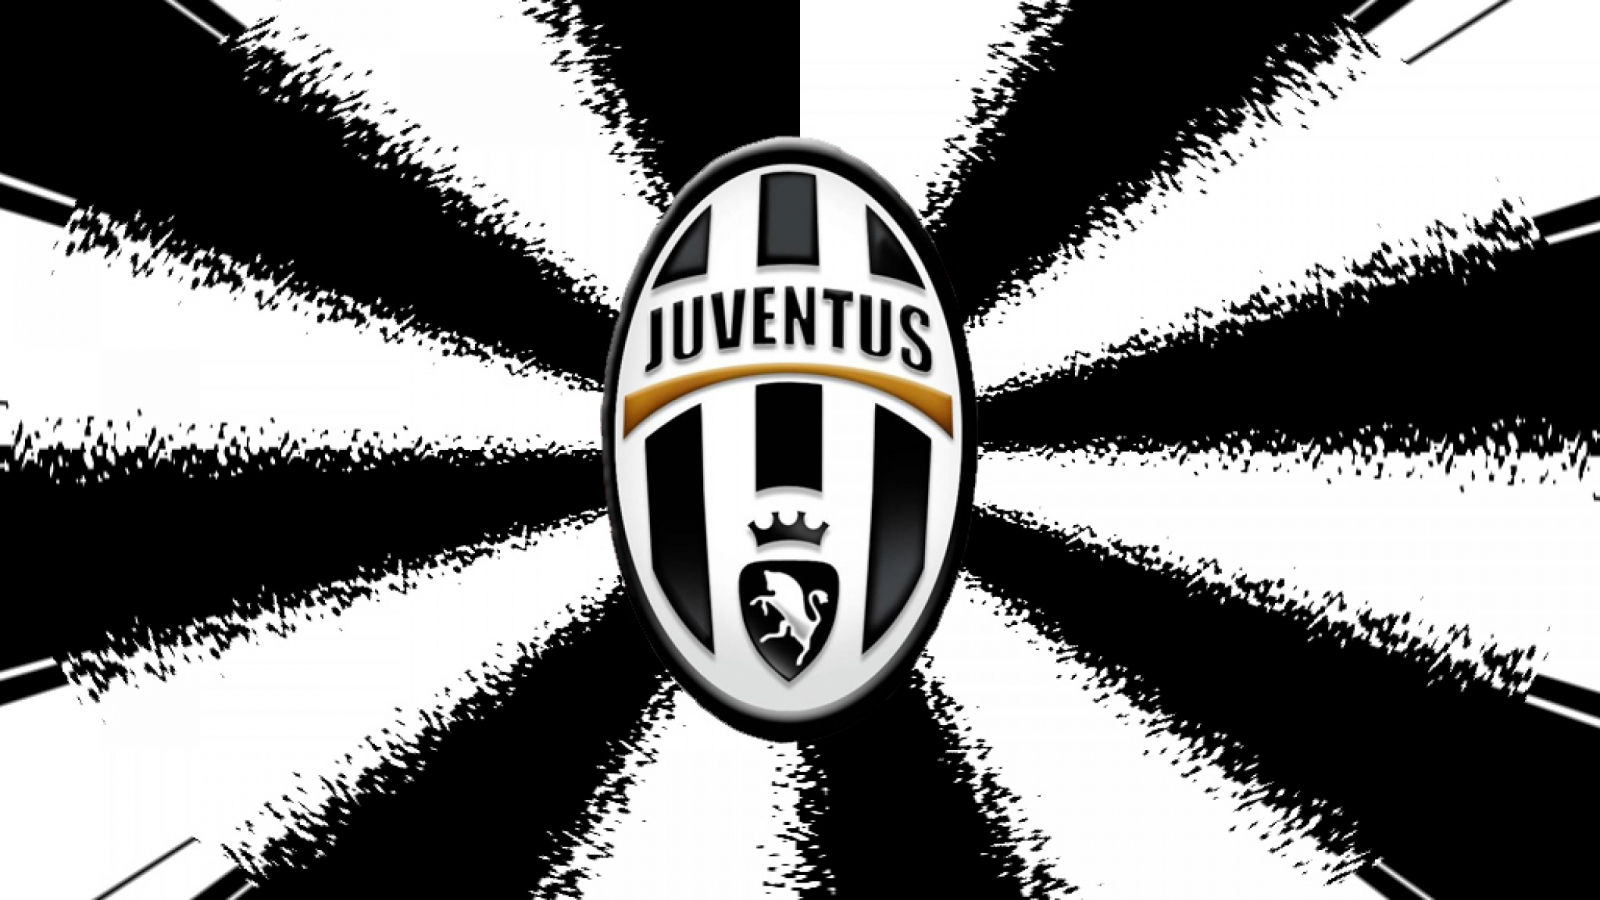 Yükle (1600x900)Juventus Logo Wallpaper - WallpaperSafarijuventus logo  black and white wallpaper 1024x768. 7d0c8887ab